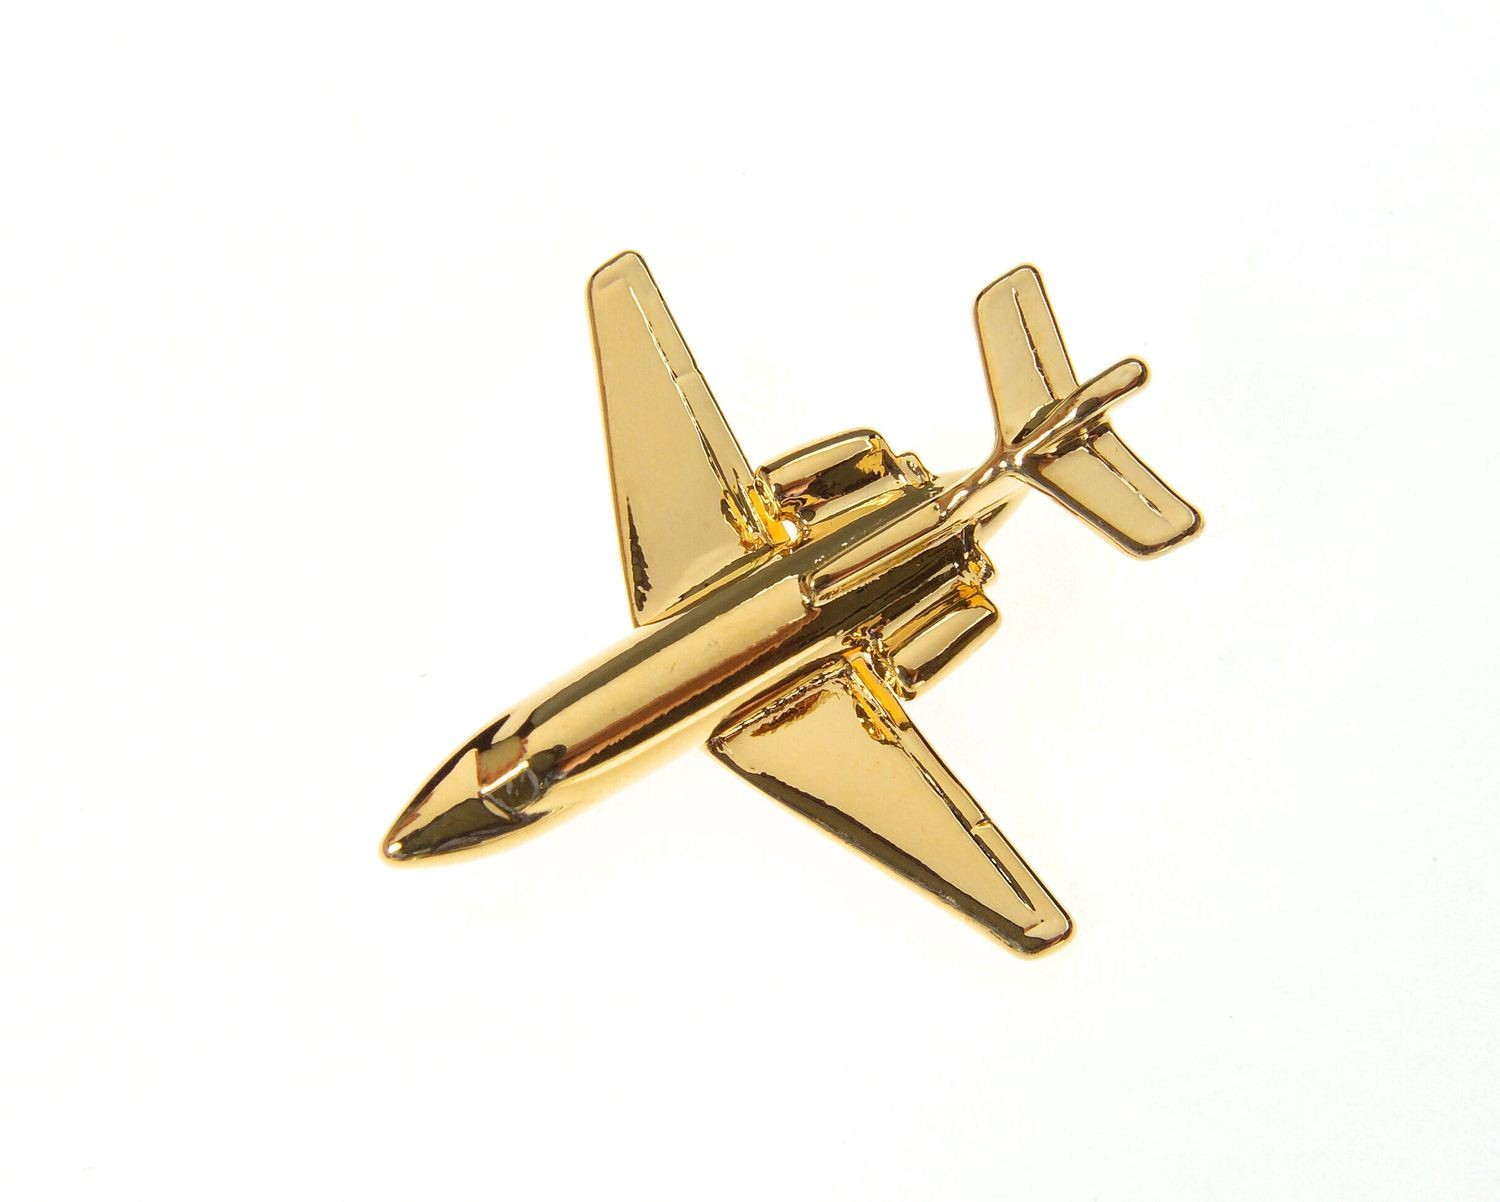 BAe 125 / HS125 Gold Plated Tie / Lapel Pin